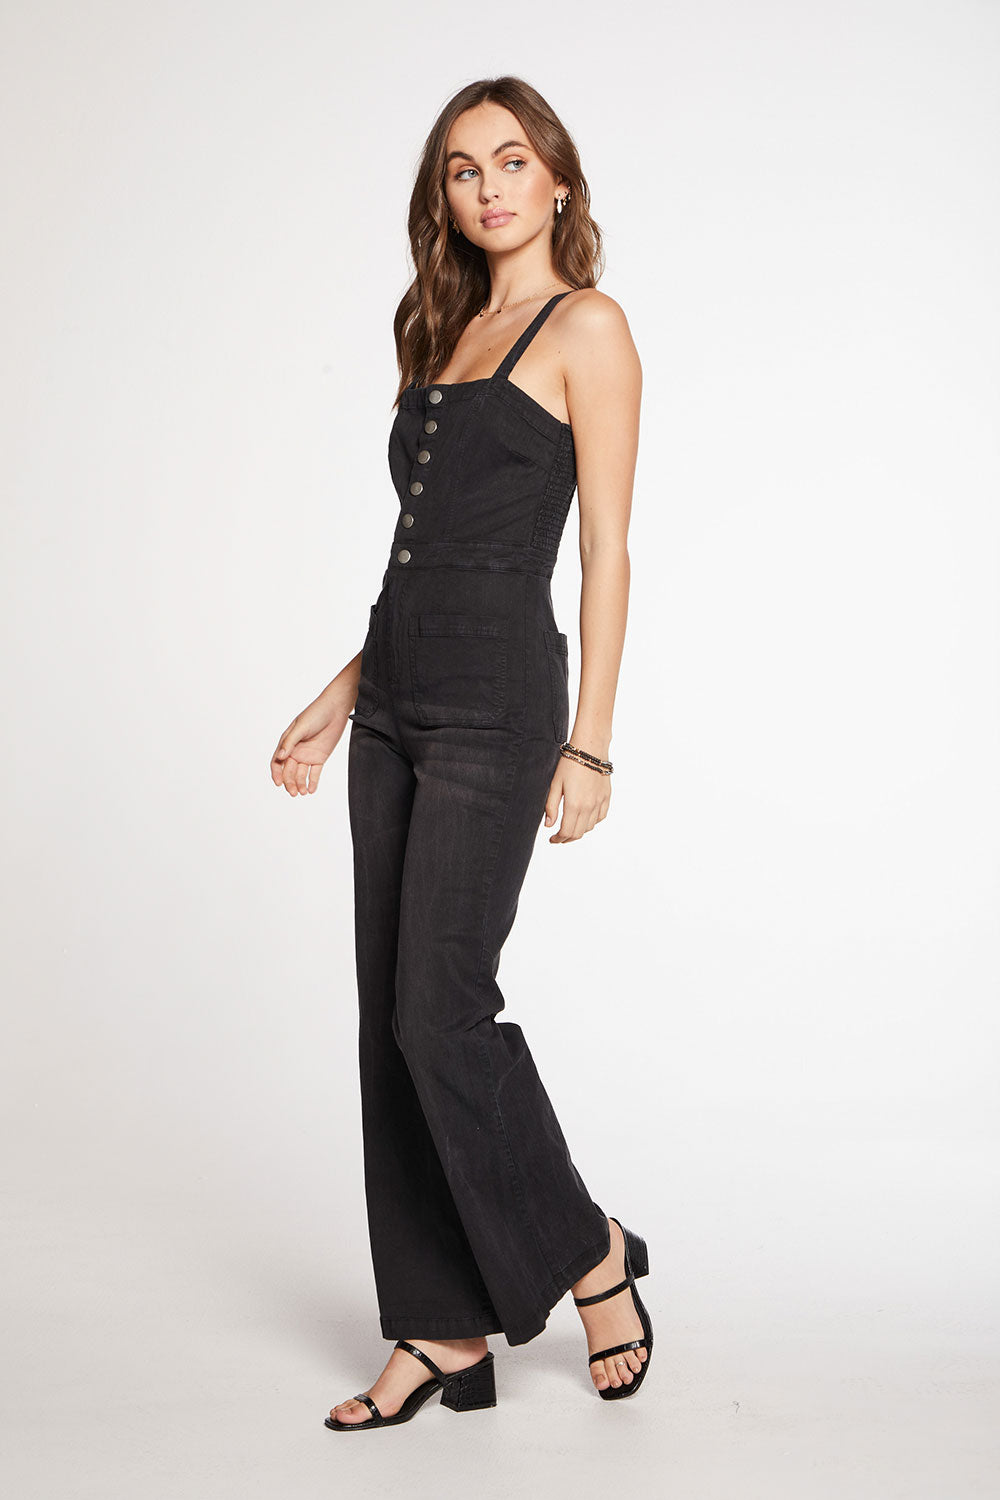 Stretch Twill Square Neck Button Down Wide Leg Jumpsuit WOMENS chaserbrand4.myshopify.com